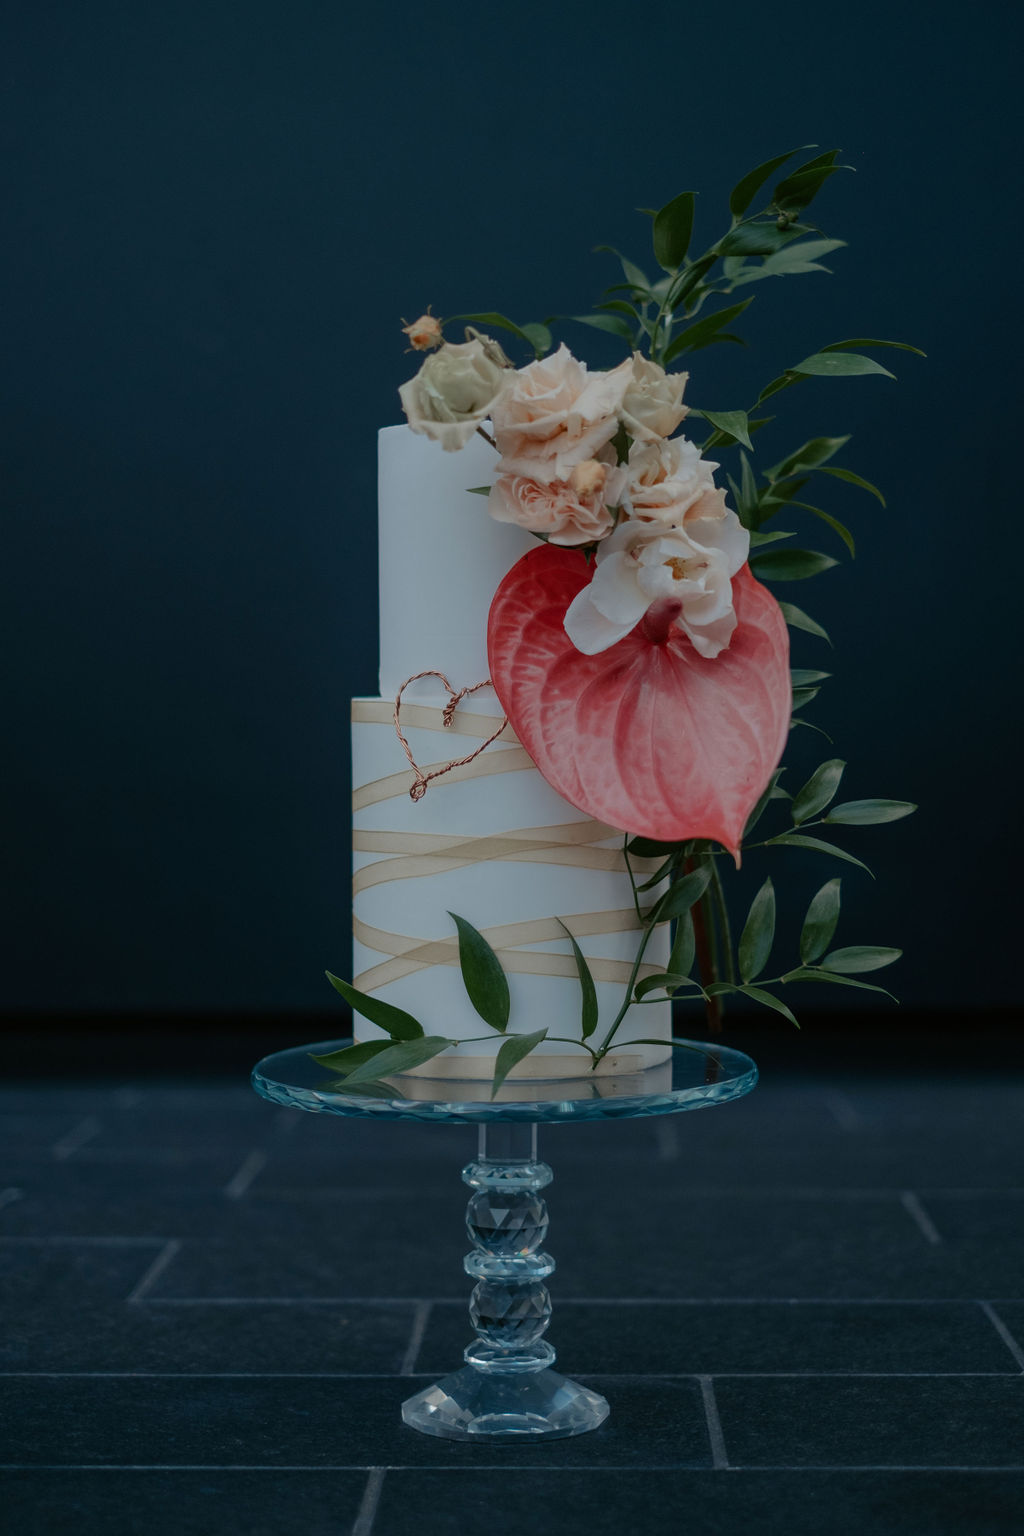 Beautiful Cake from Silver leaf cake company